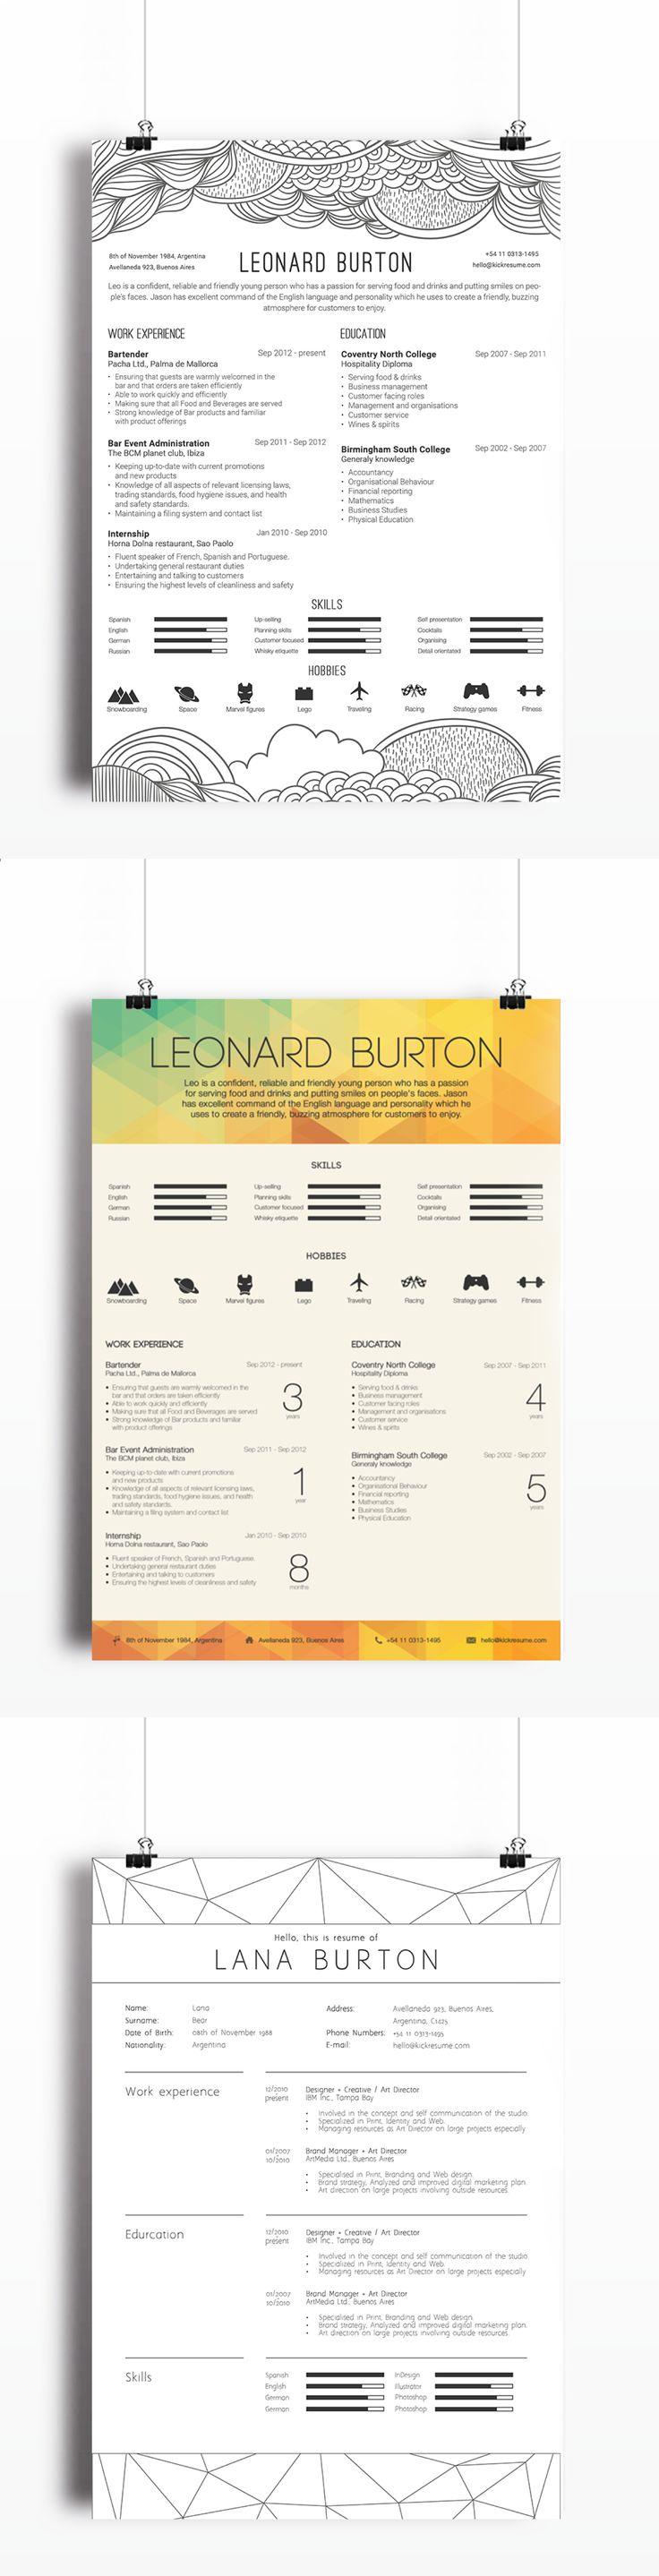 best ideas about resume layout resume design 17 best ideas about resume layout resume design graphic designer resume and cv design